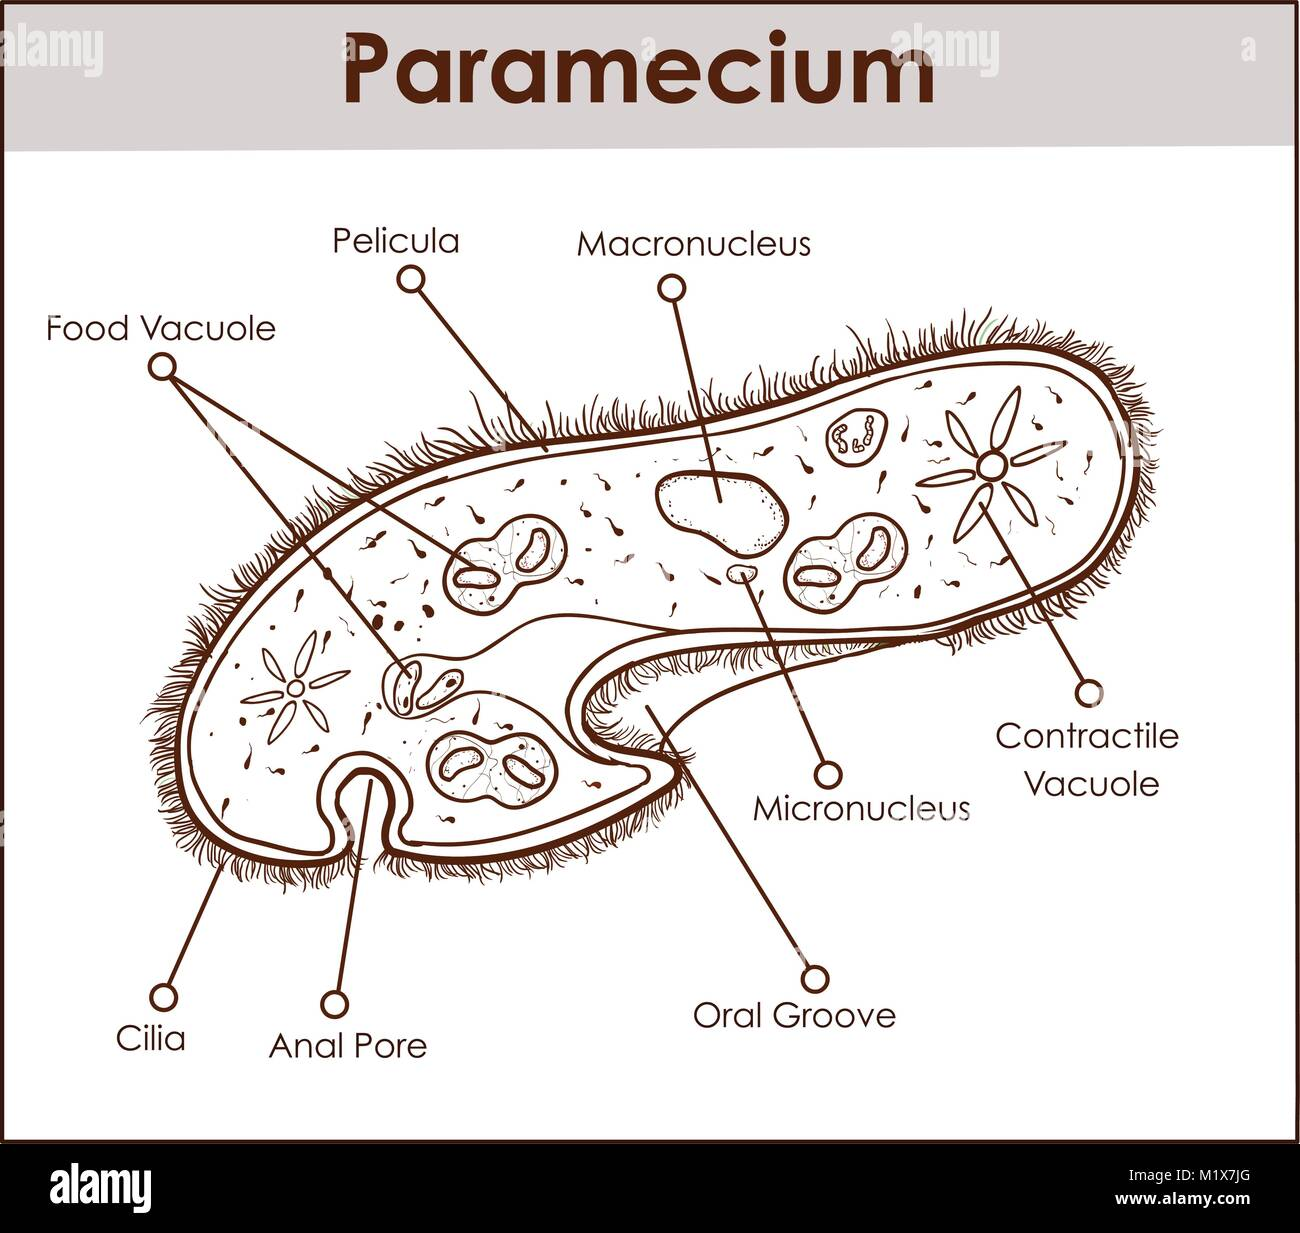 hight resolution of la estructura de la paramecio saudatum imagen de stock